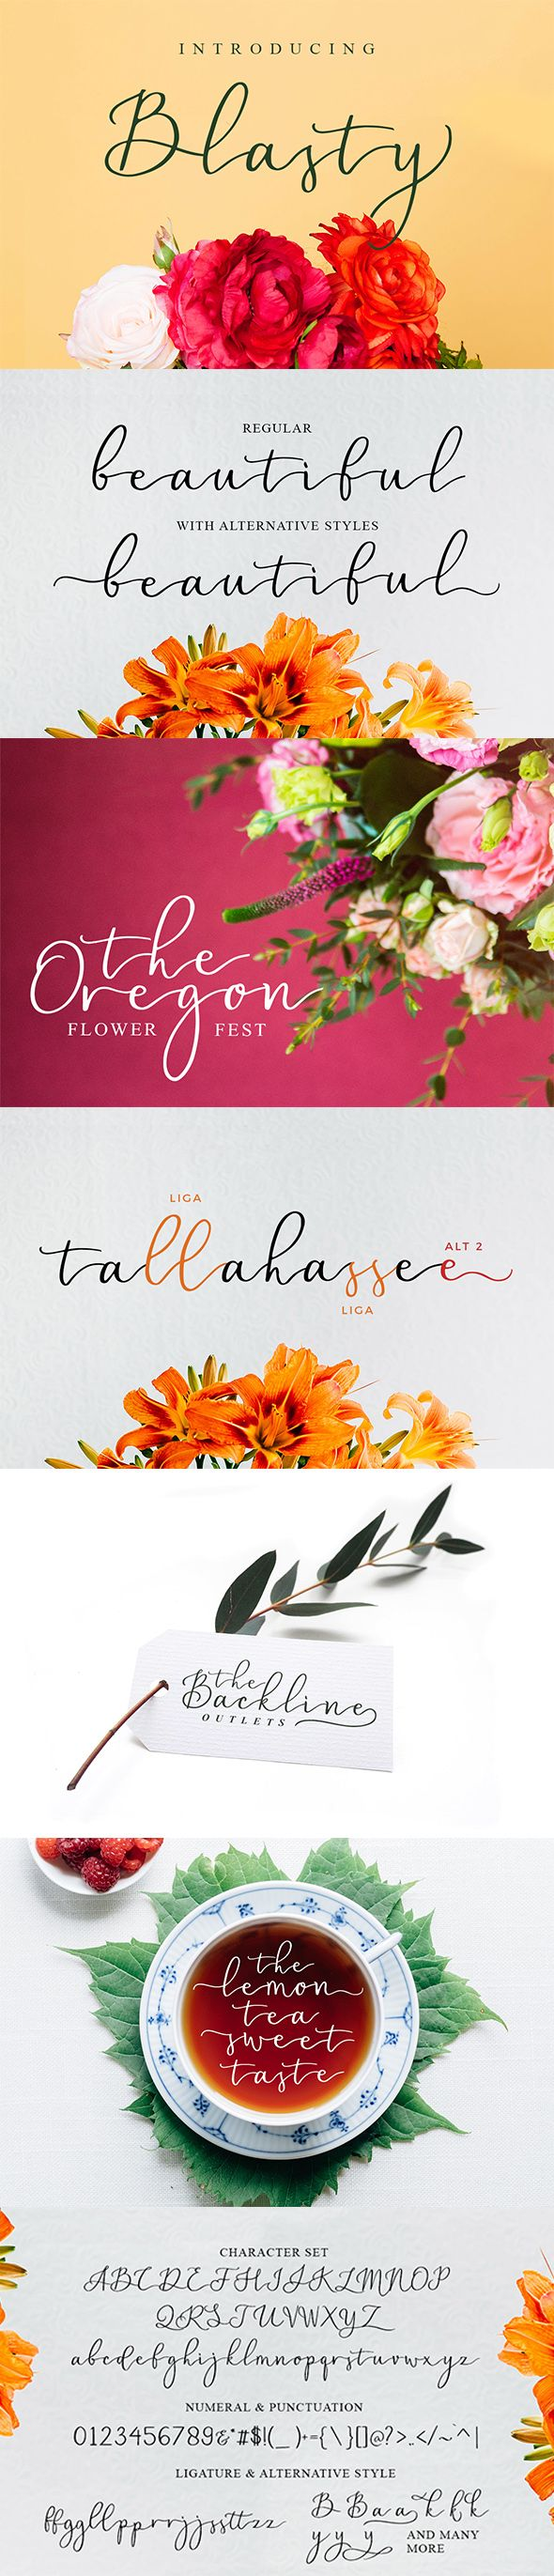 cursive fonts for wedding cards%0A Blasty Script